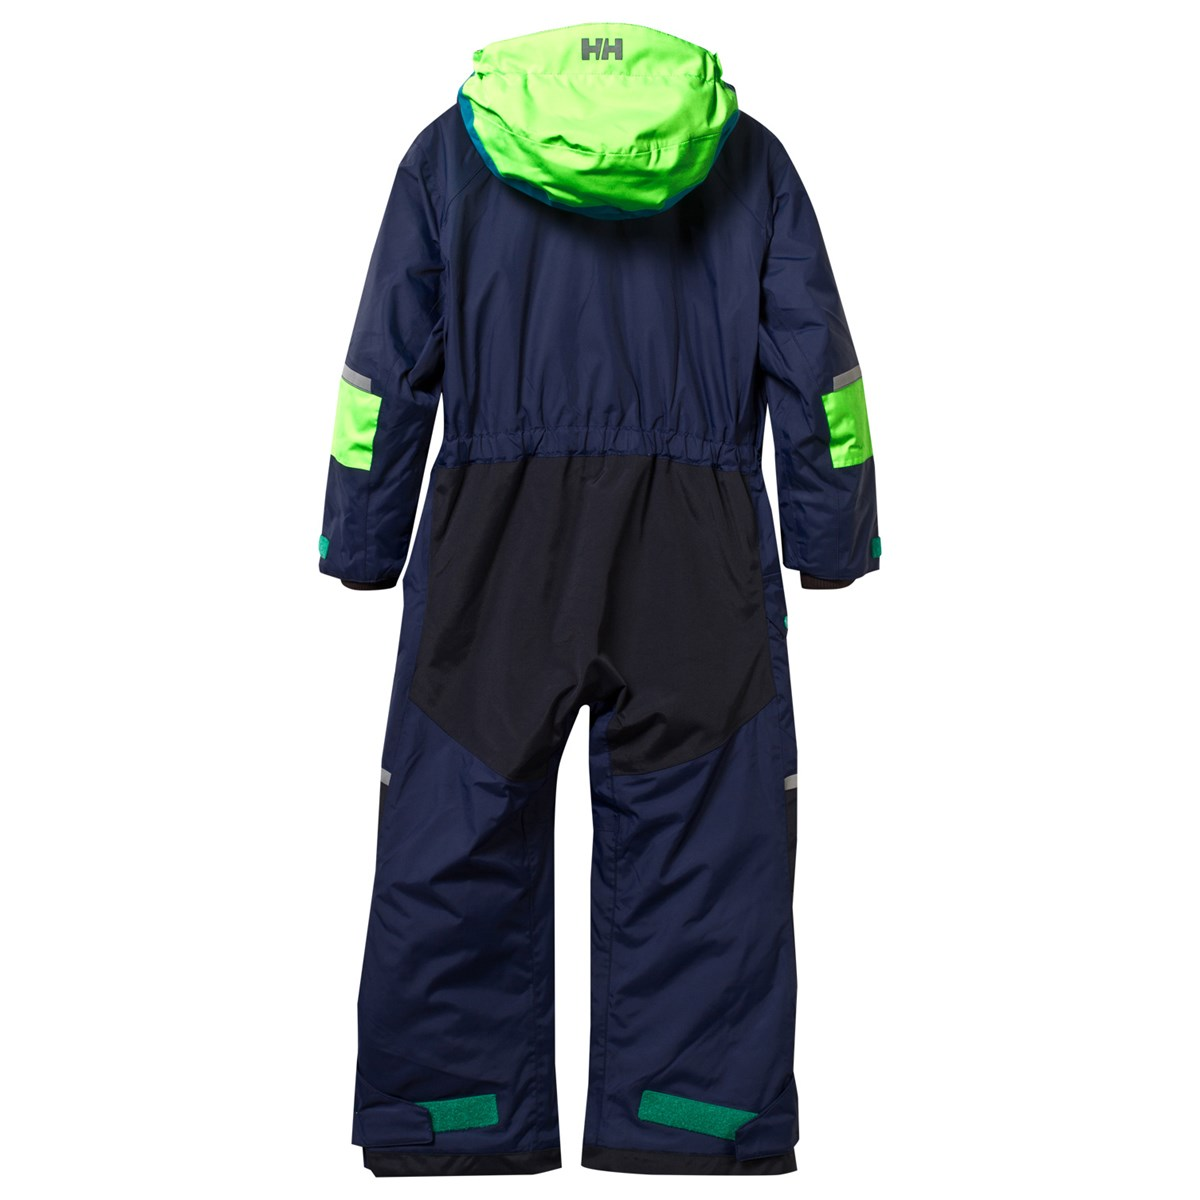 ec2a8a0be Helly Hansen Navy Kids Legacy Insulated Ski Suit | AlexandAlexa